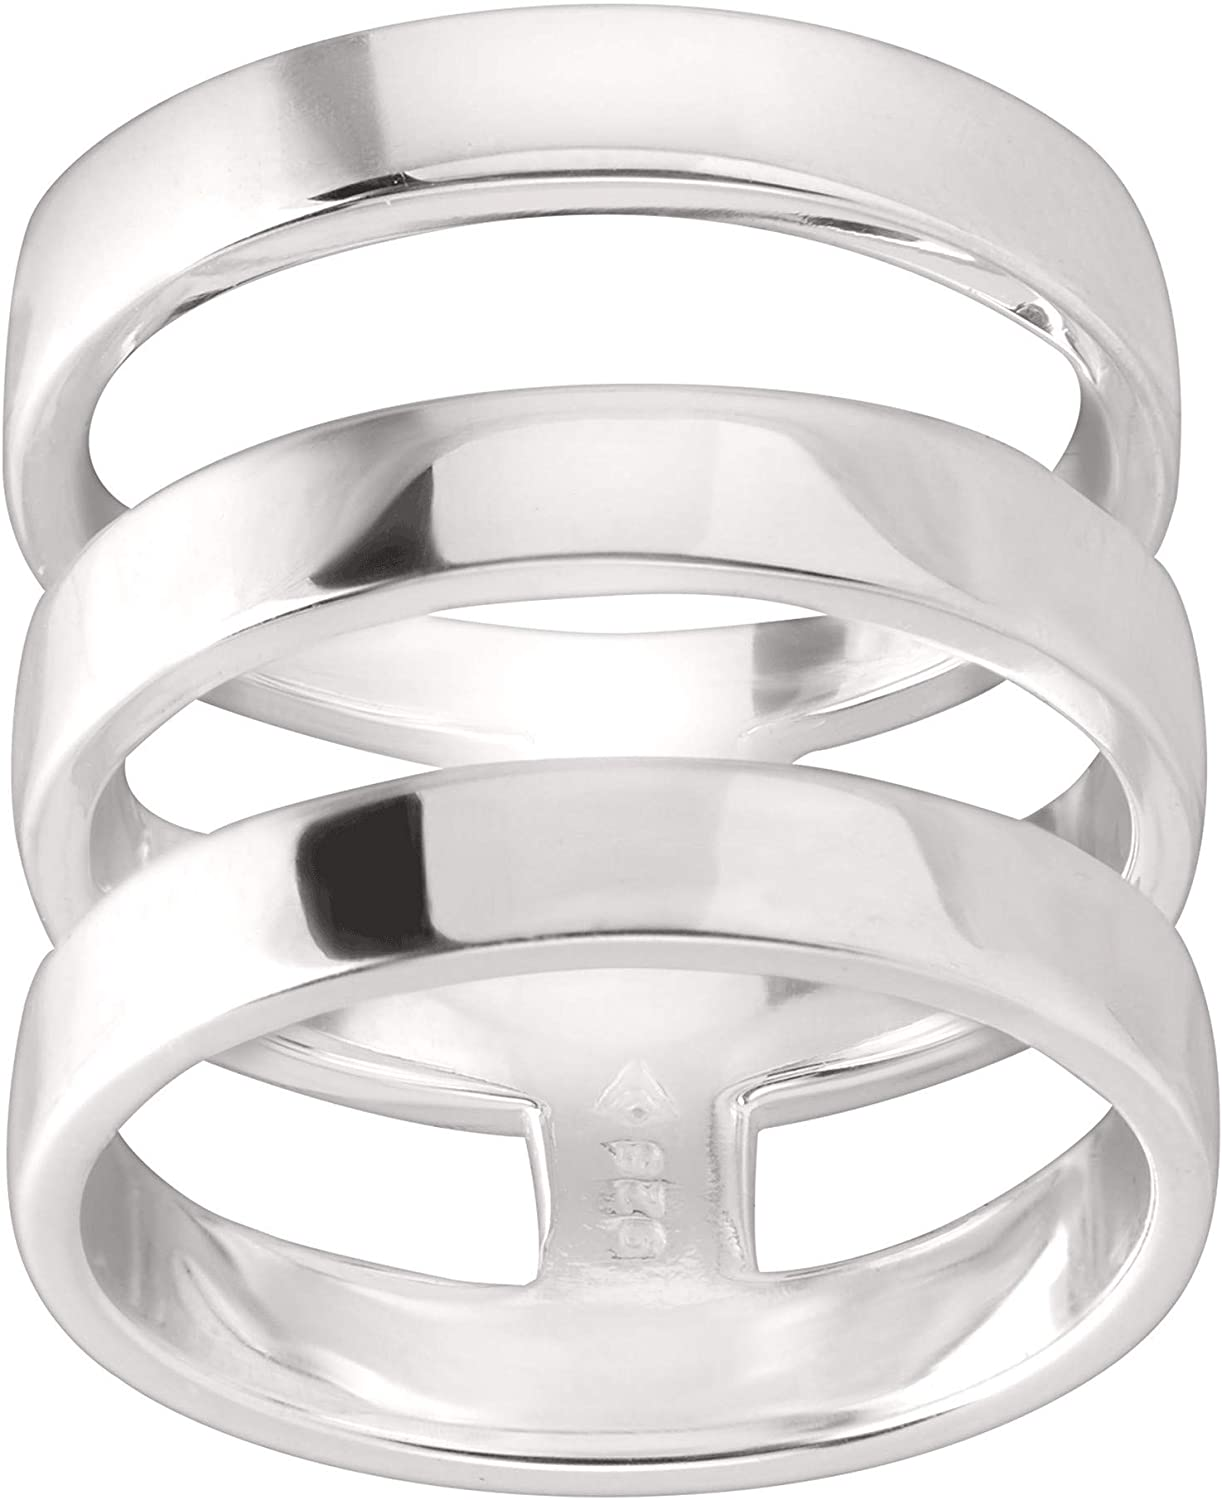 Silpada 'Contemporary Art' Triple-Bar Ring in Sterling Silver